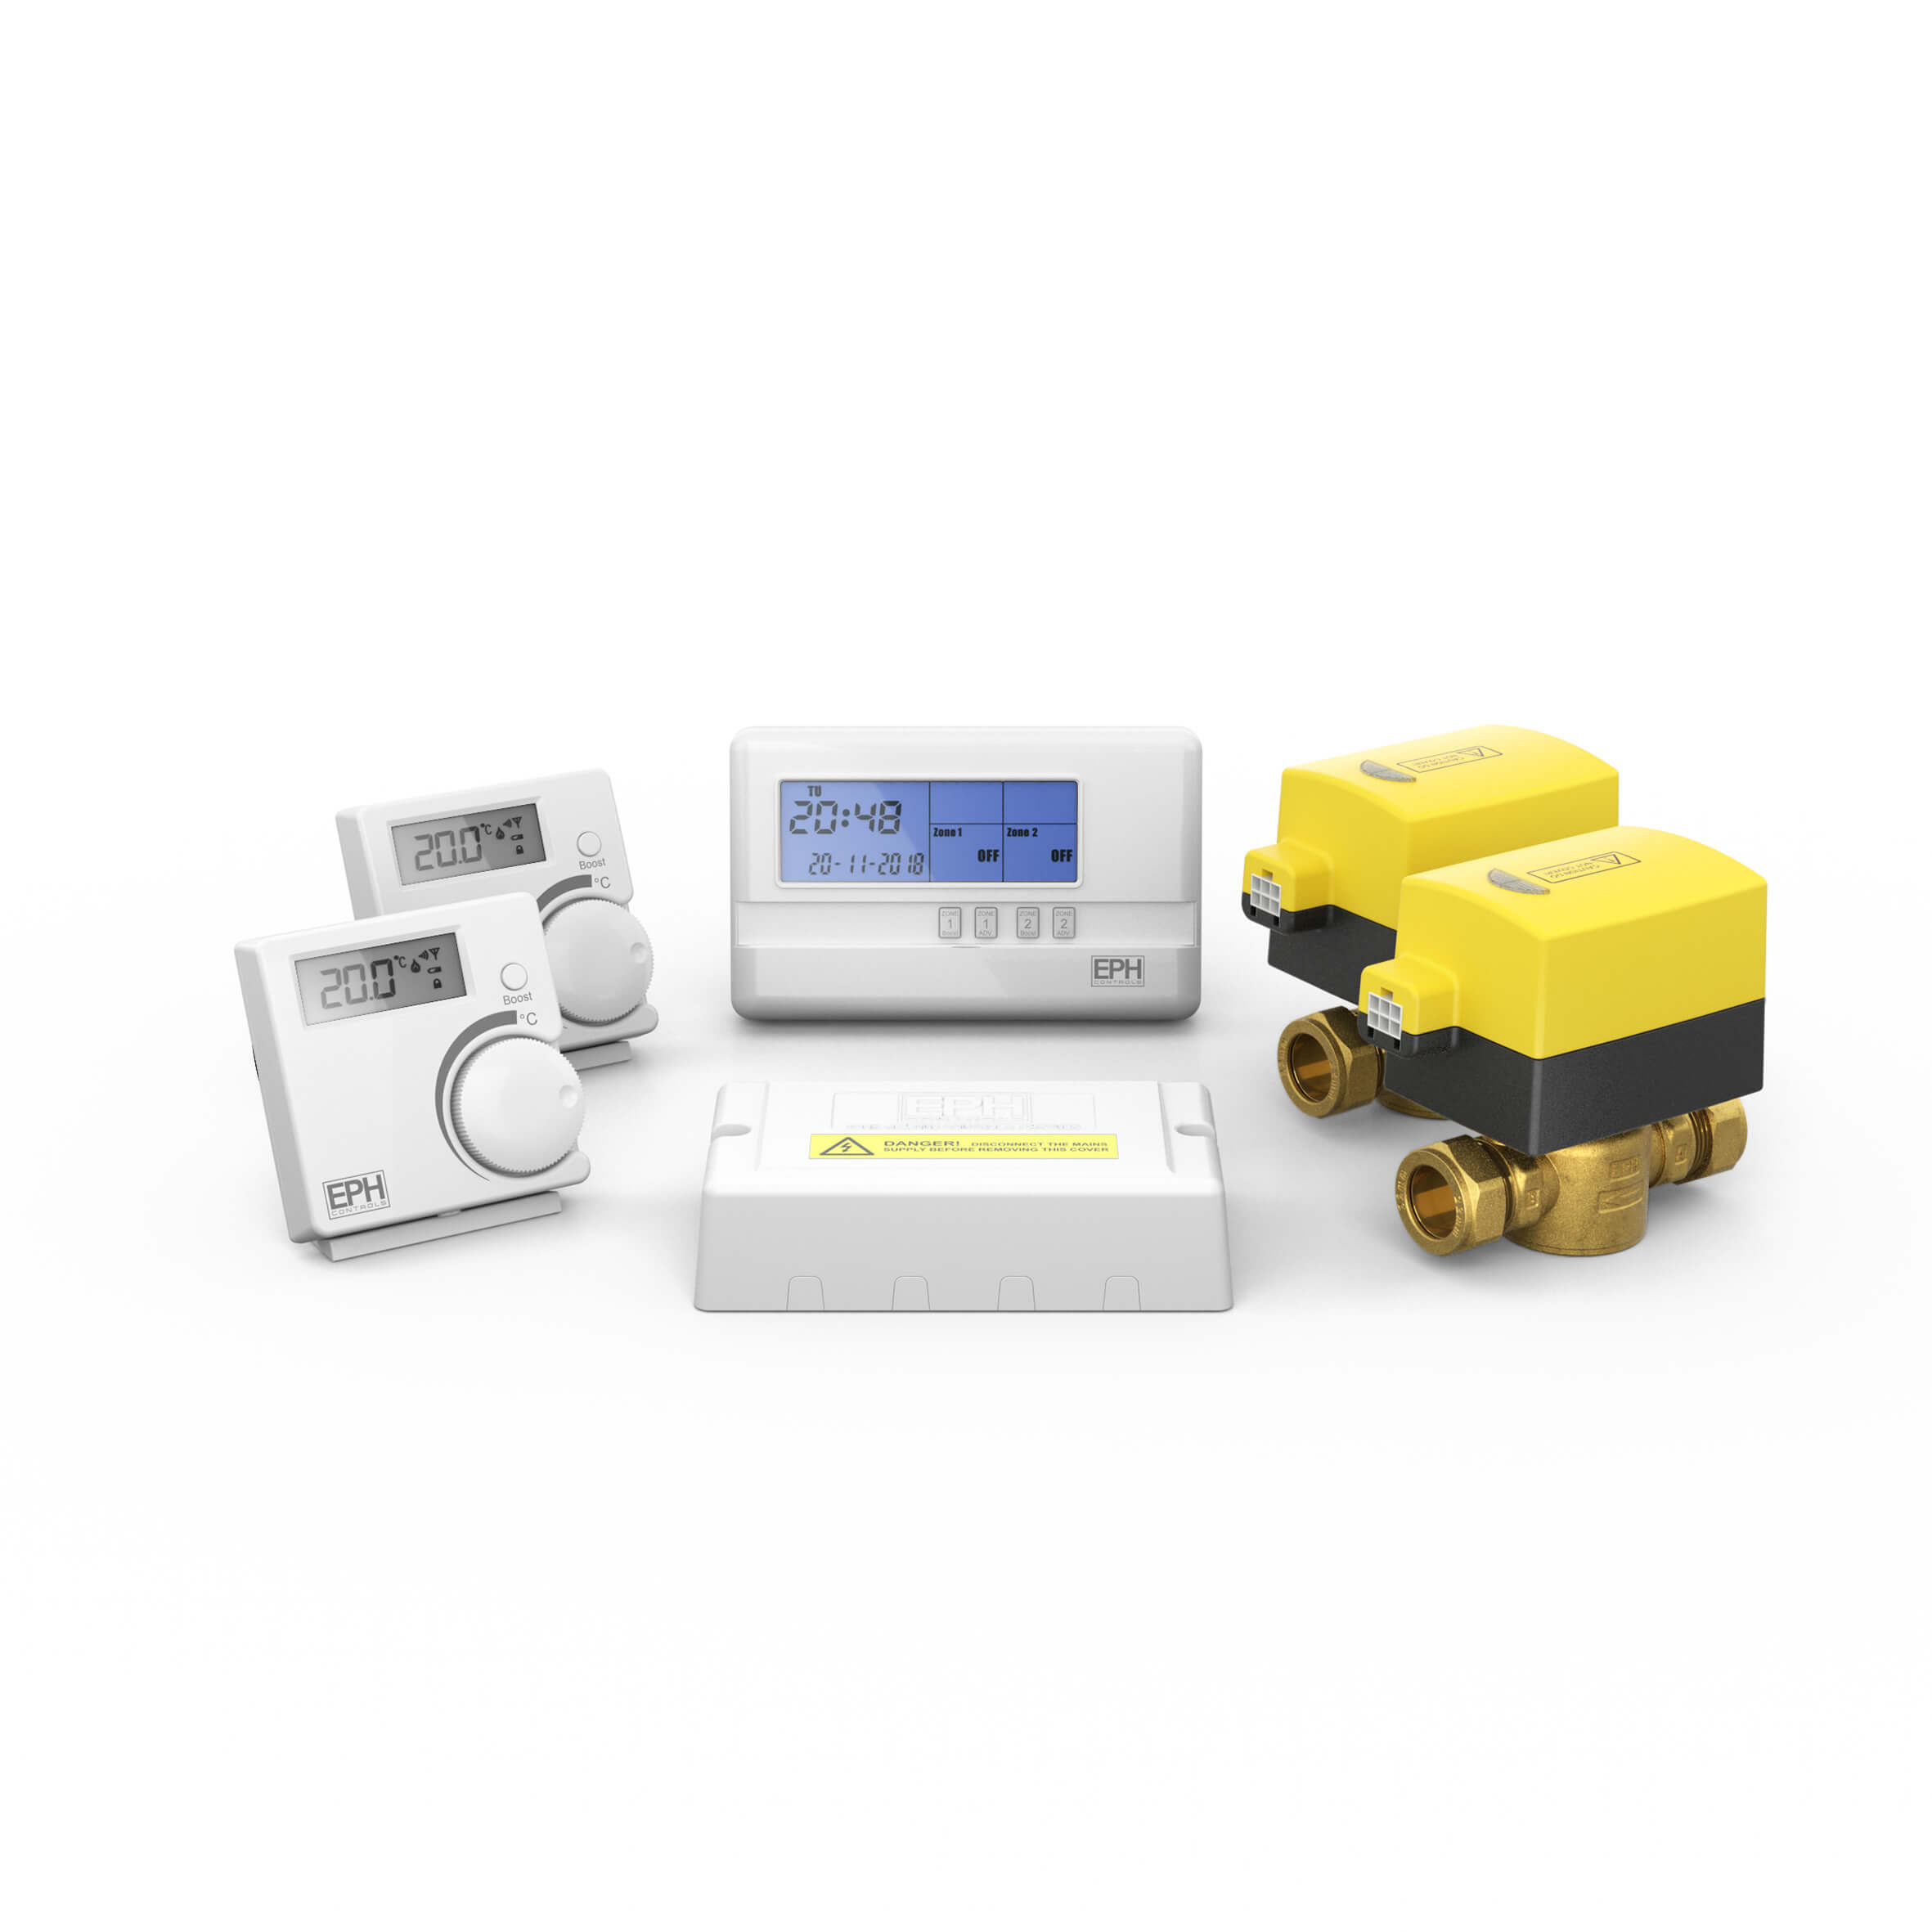 2 Zone Bi Zoning Rf Control Pack Eph Controls. Crf2p212201 High Resolution 927k. Wiring. Residential 2 Zone Thermostat Wiring Diagram At Scoala.co